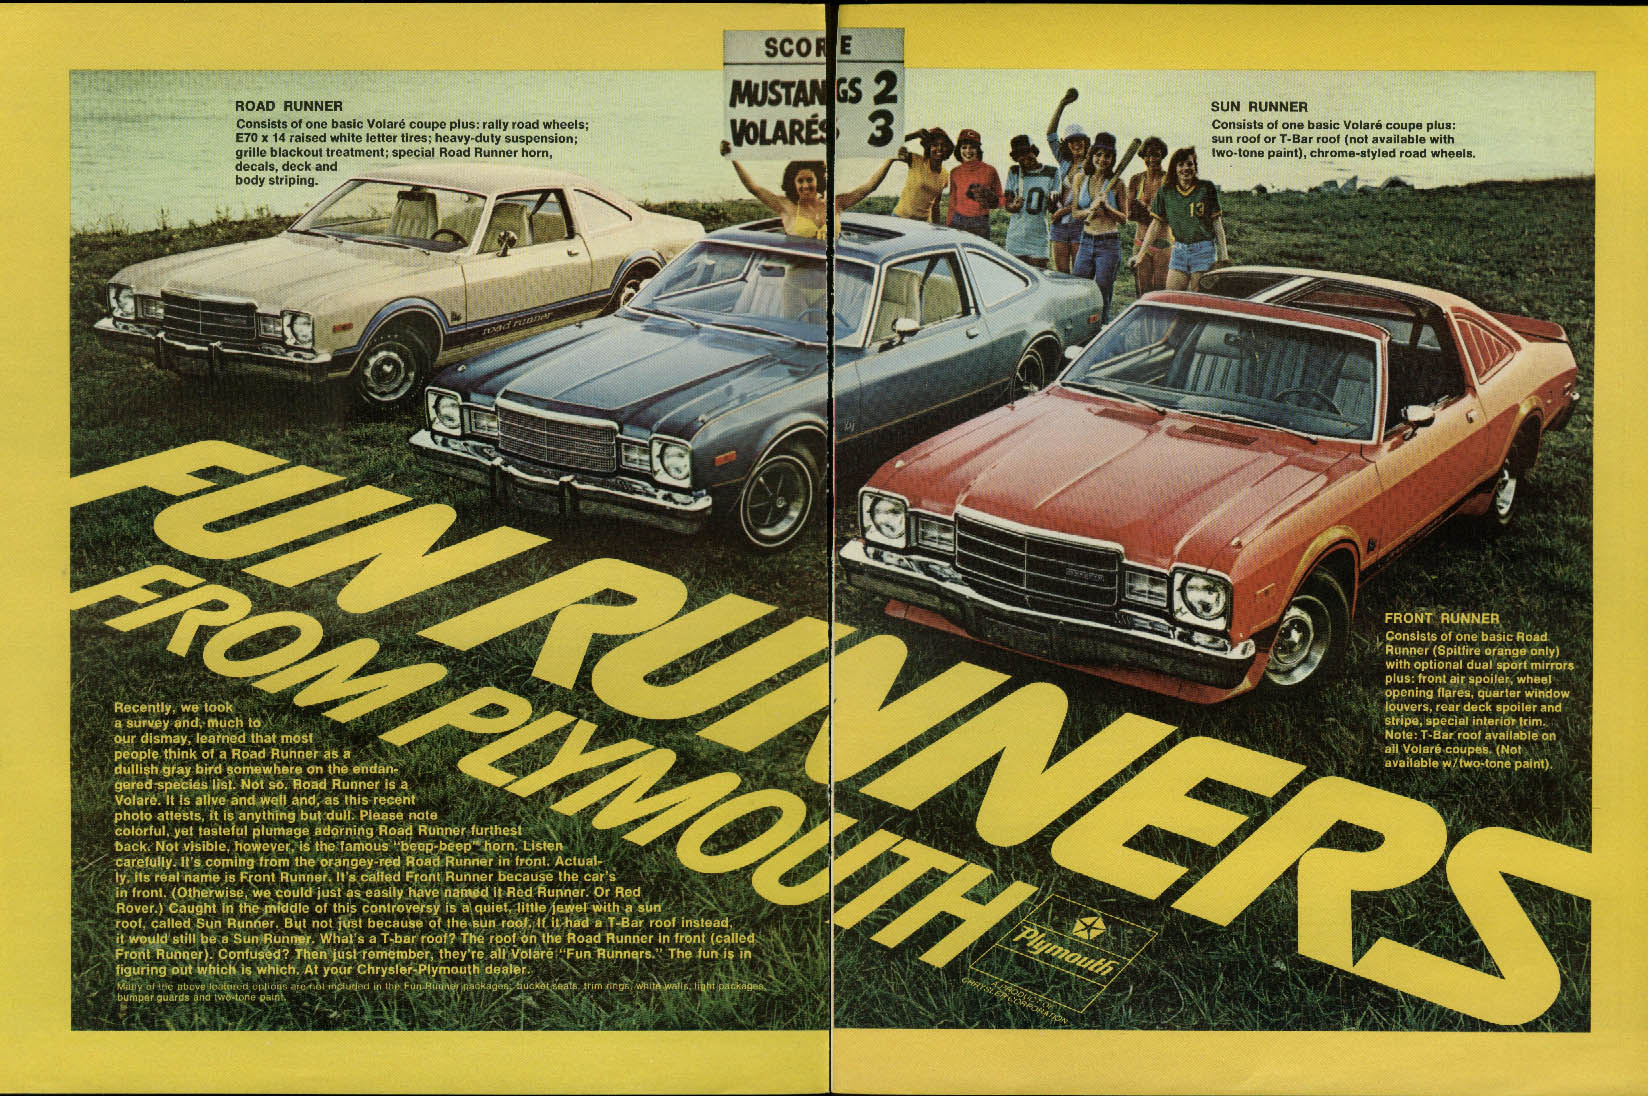 Fun Runners from Plymouth Road Runner Sun Runner Front Runner ad 1977